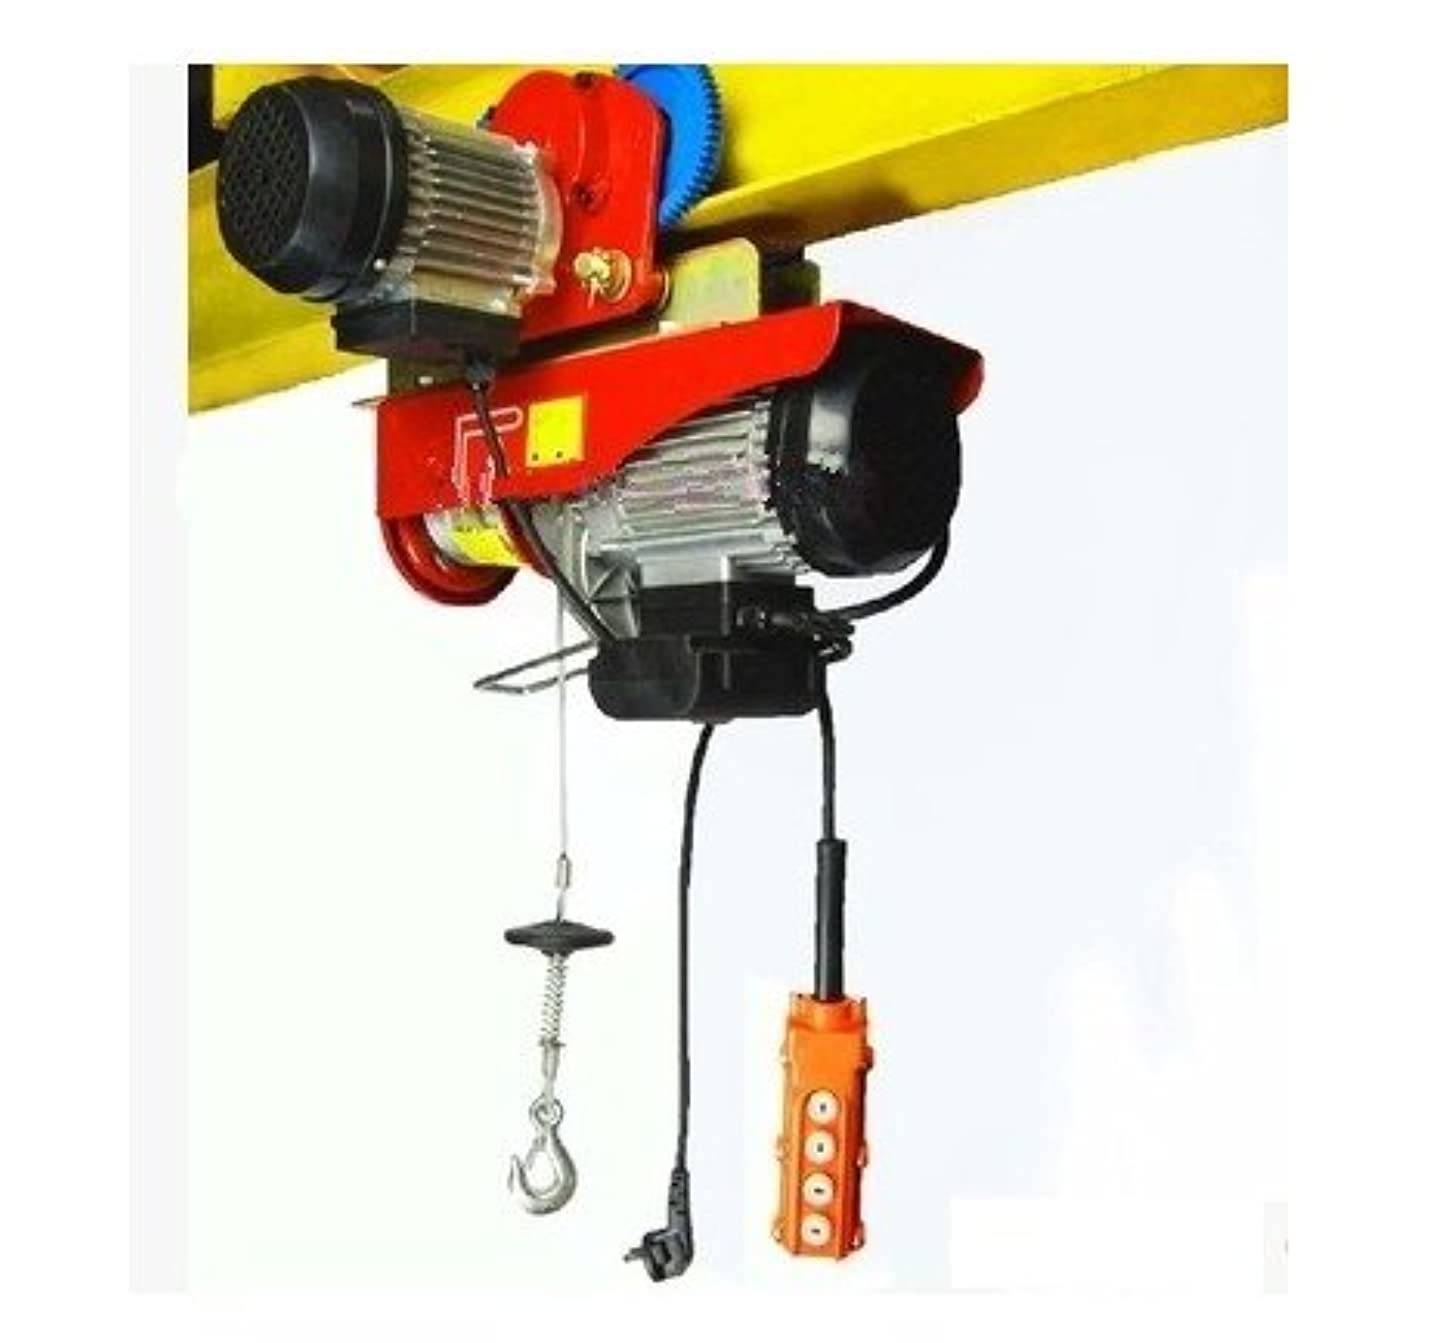 GOWE 150kg/300KG 12M, 220V 50HZ 1-phase, all-in-one mini electric wire rope hoist with trolley PA mini block, crane, lifting sling